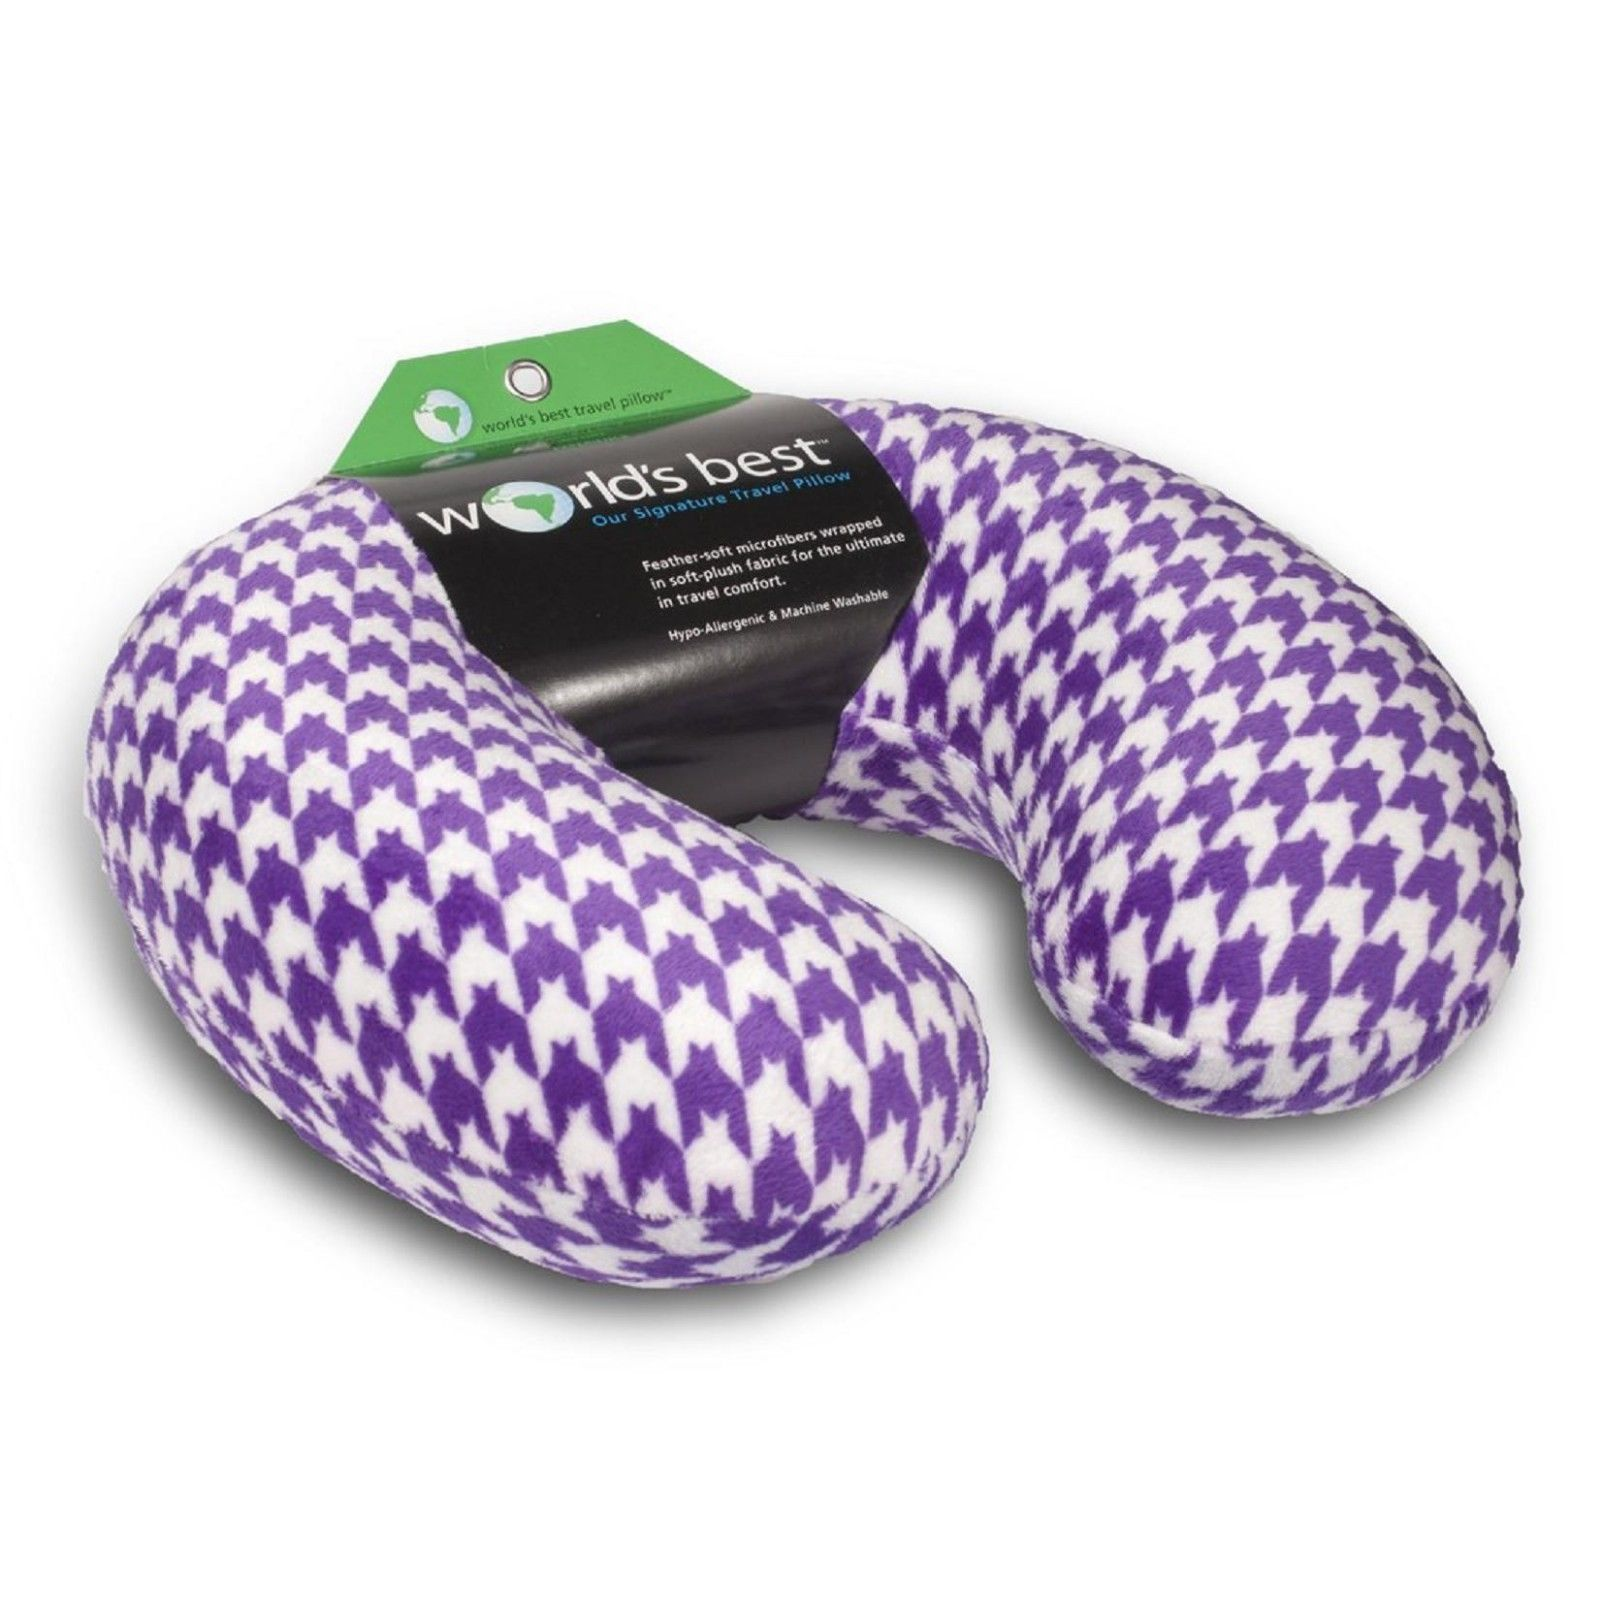 Travel Neck Pillow Microfiber Neck Rest Pillow Hypoallergenic Therapy Pillow NEW